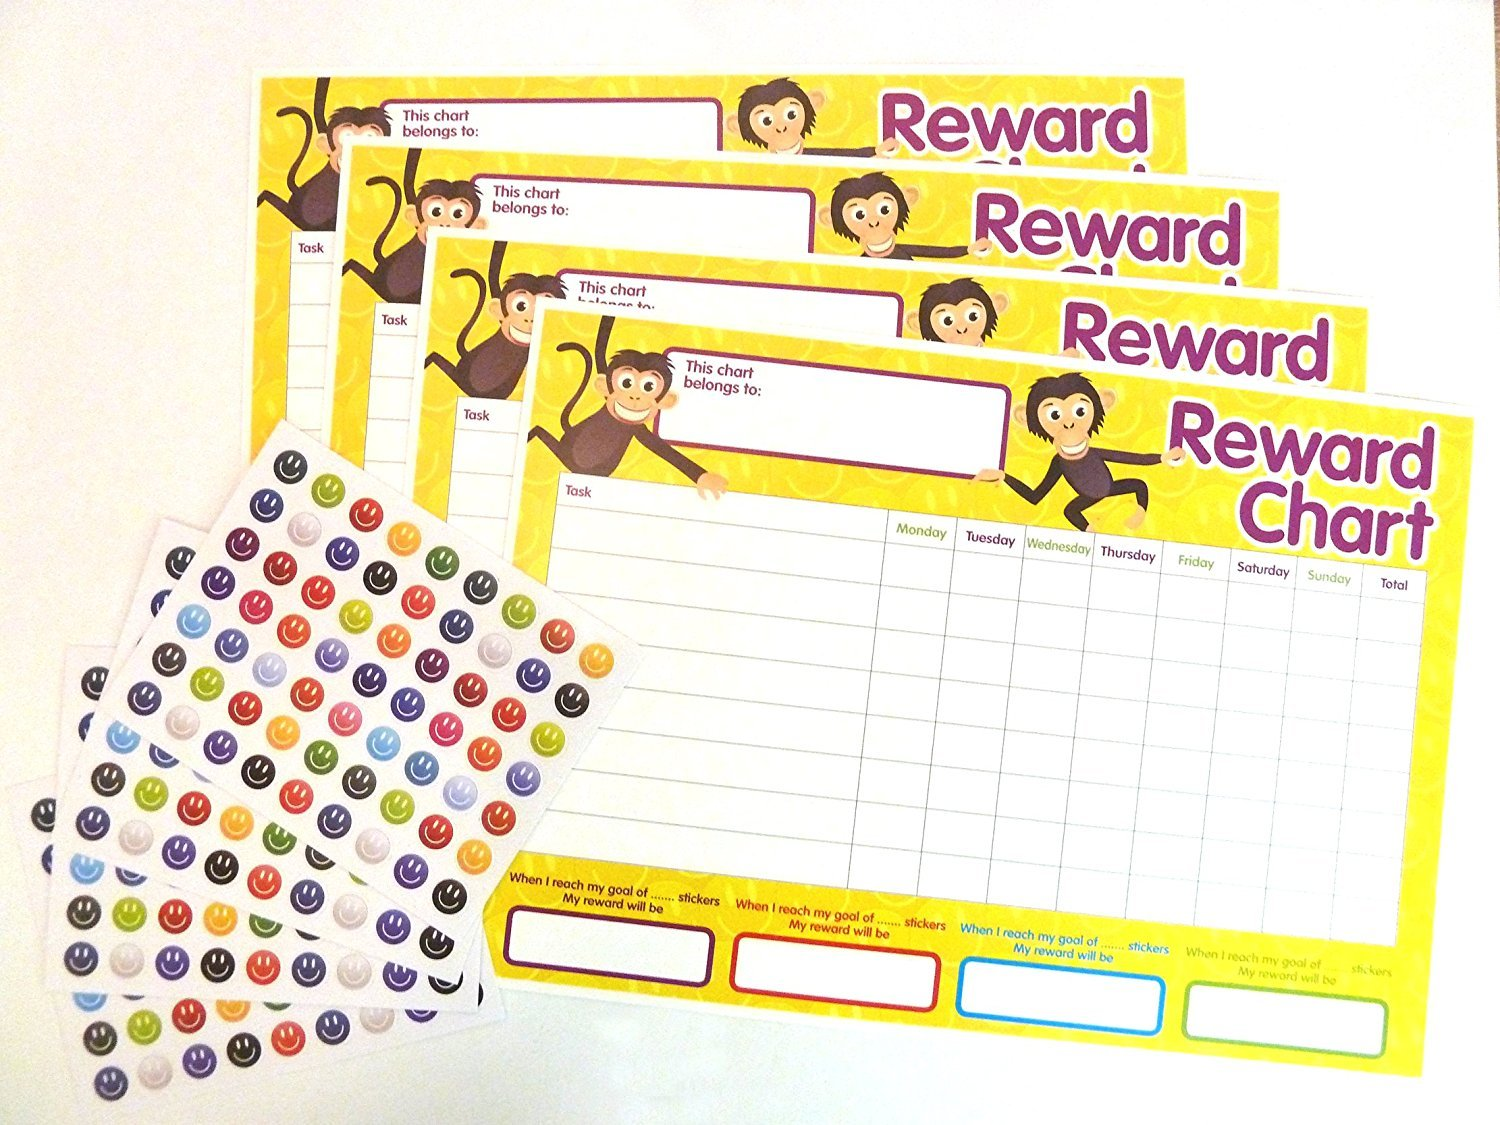 2 Packs of 4 Children's Reward Chart Plus Stickers County Stationery